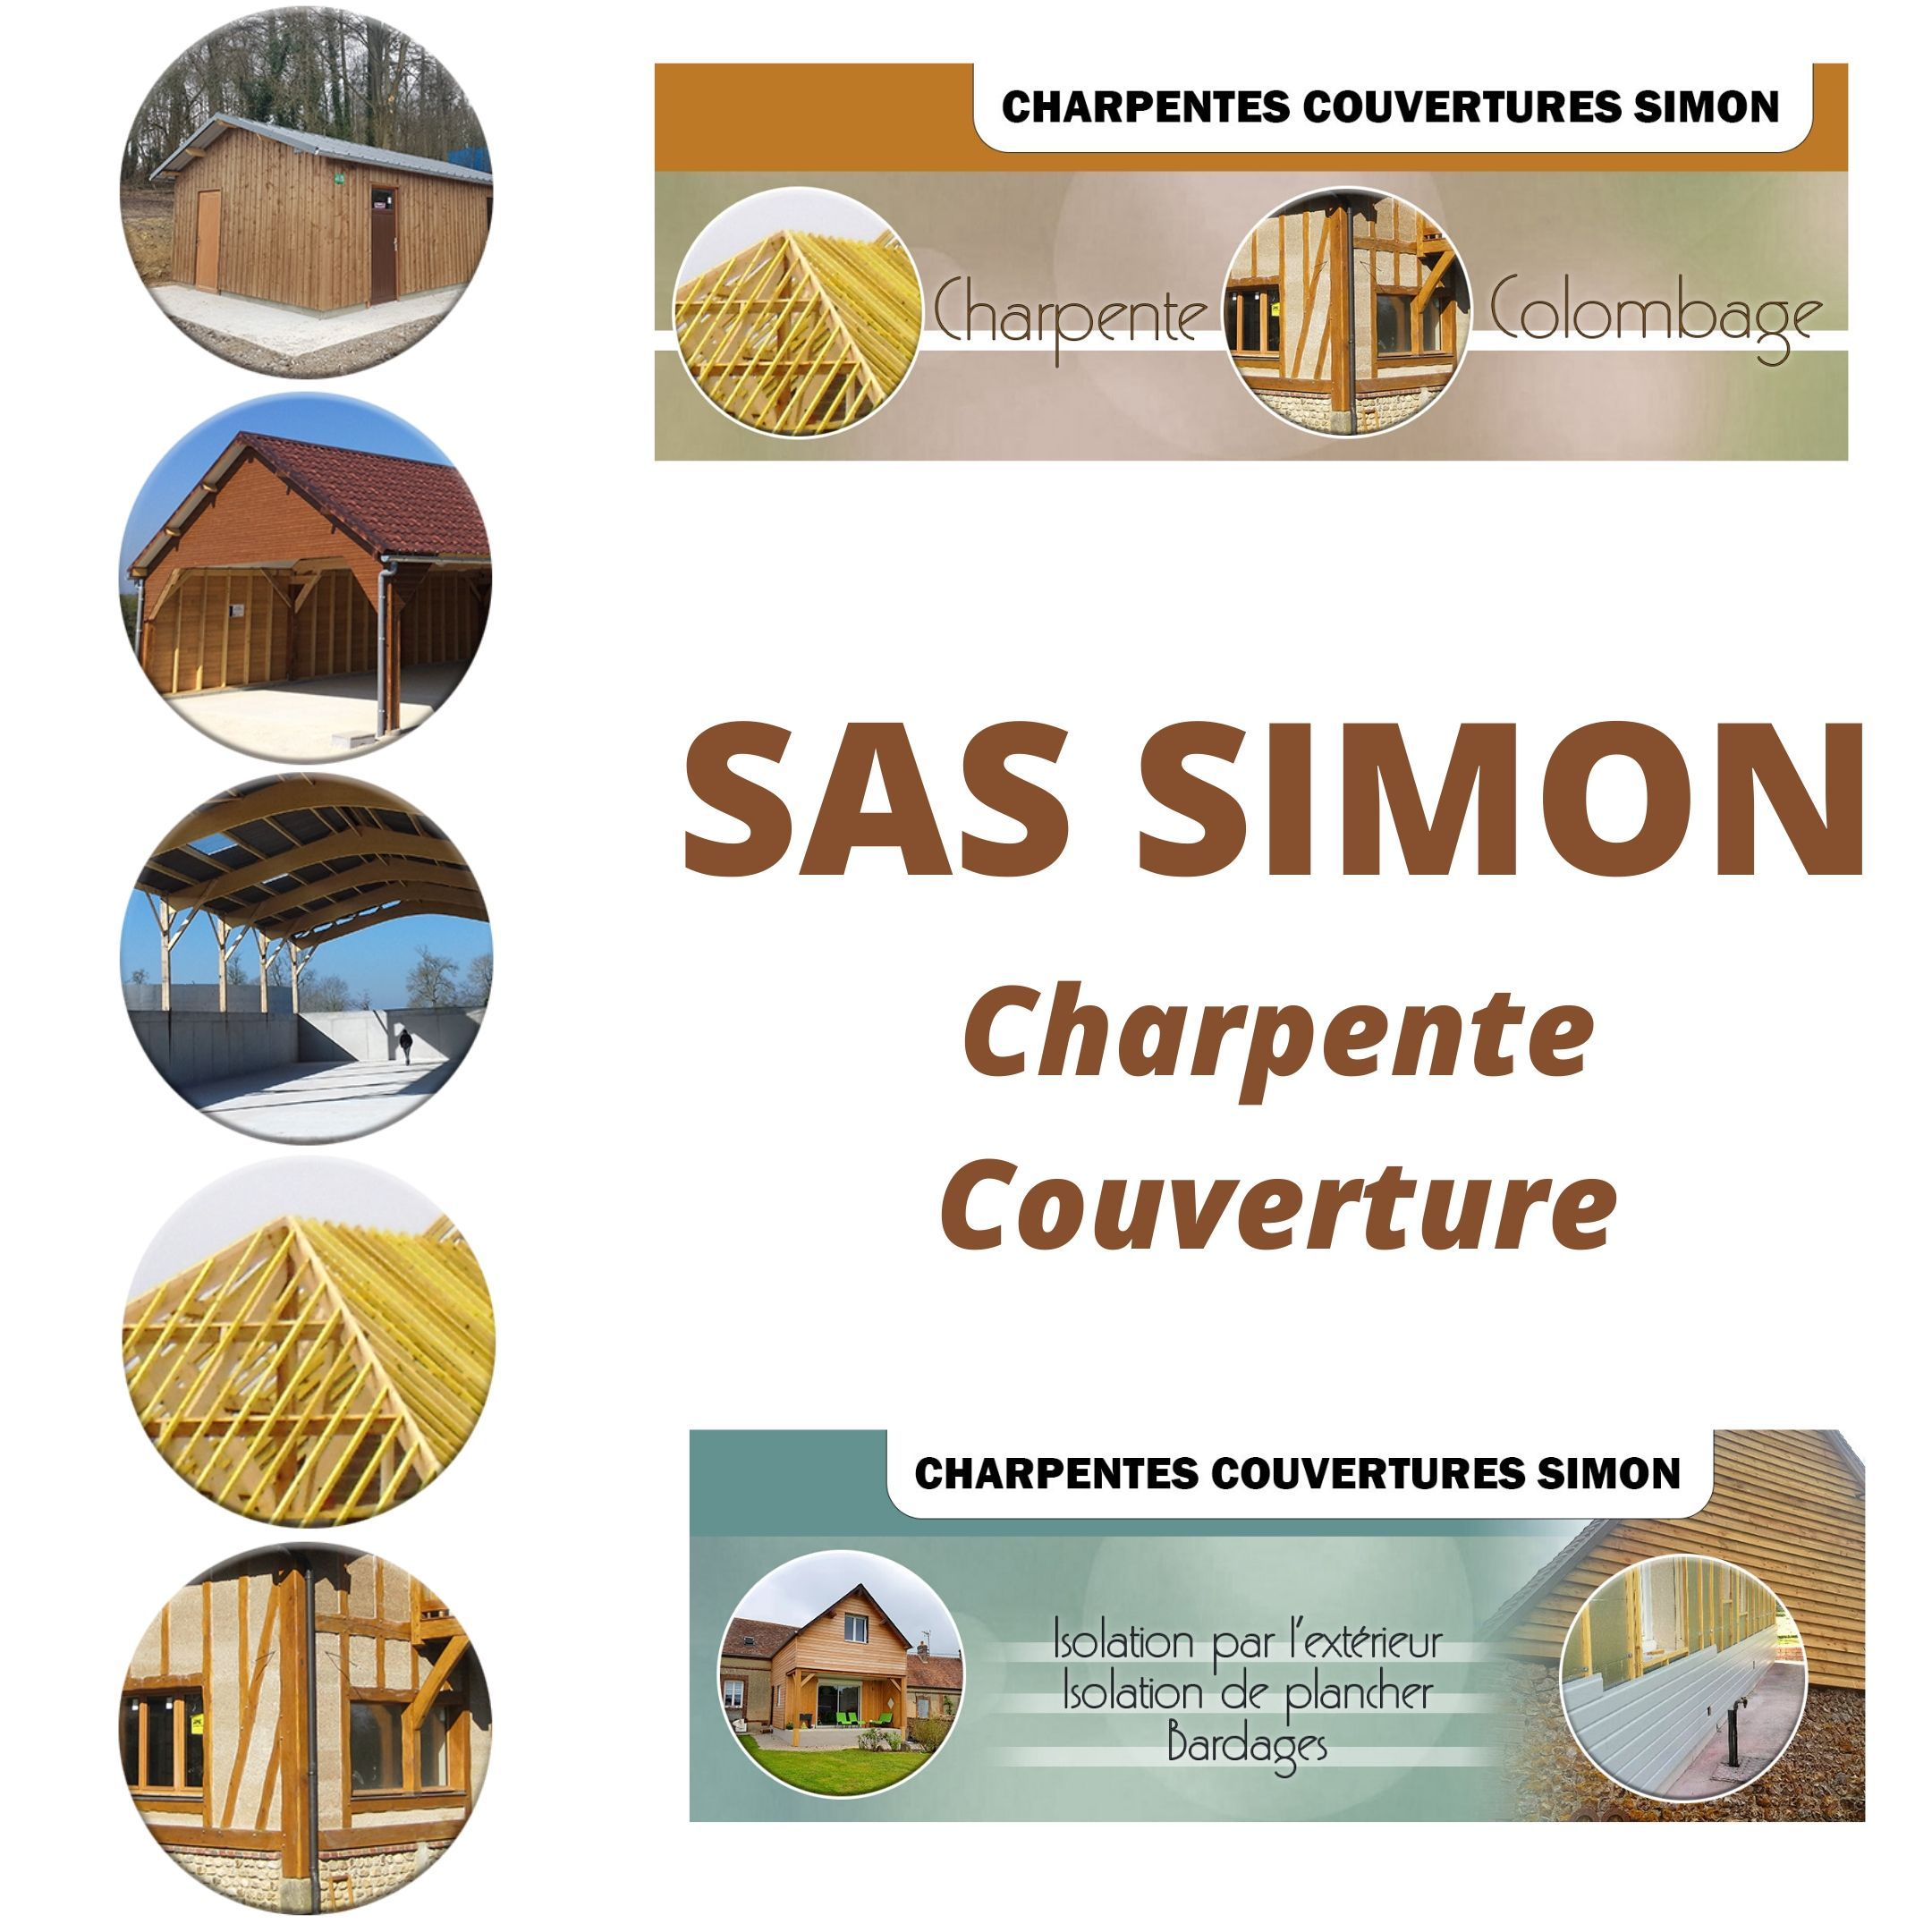 SAS SIMON Charpente Couverture